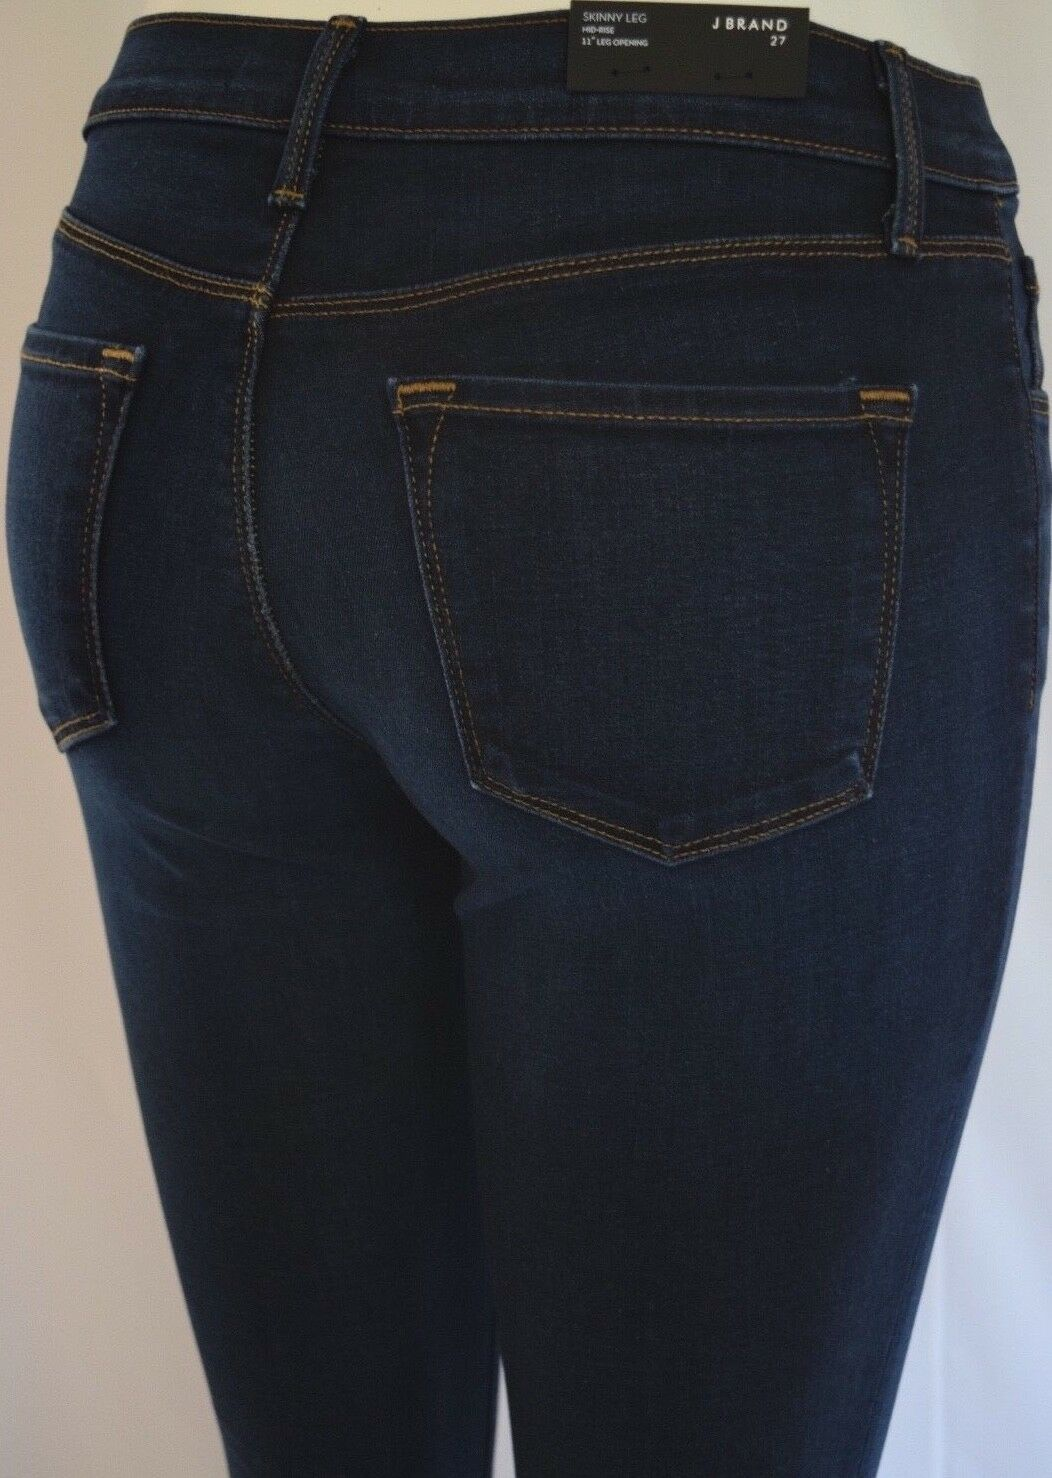 New J BRAND 811 SKINNY Mid Rise Woman Jeans SZ 27 in TERRACE DARK blueE